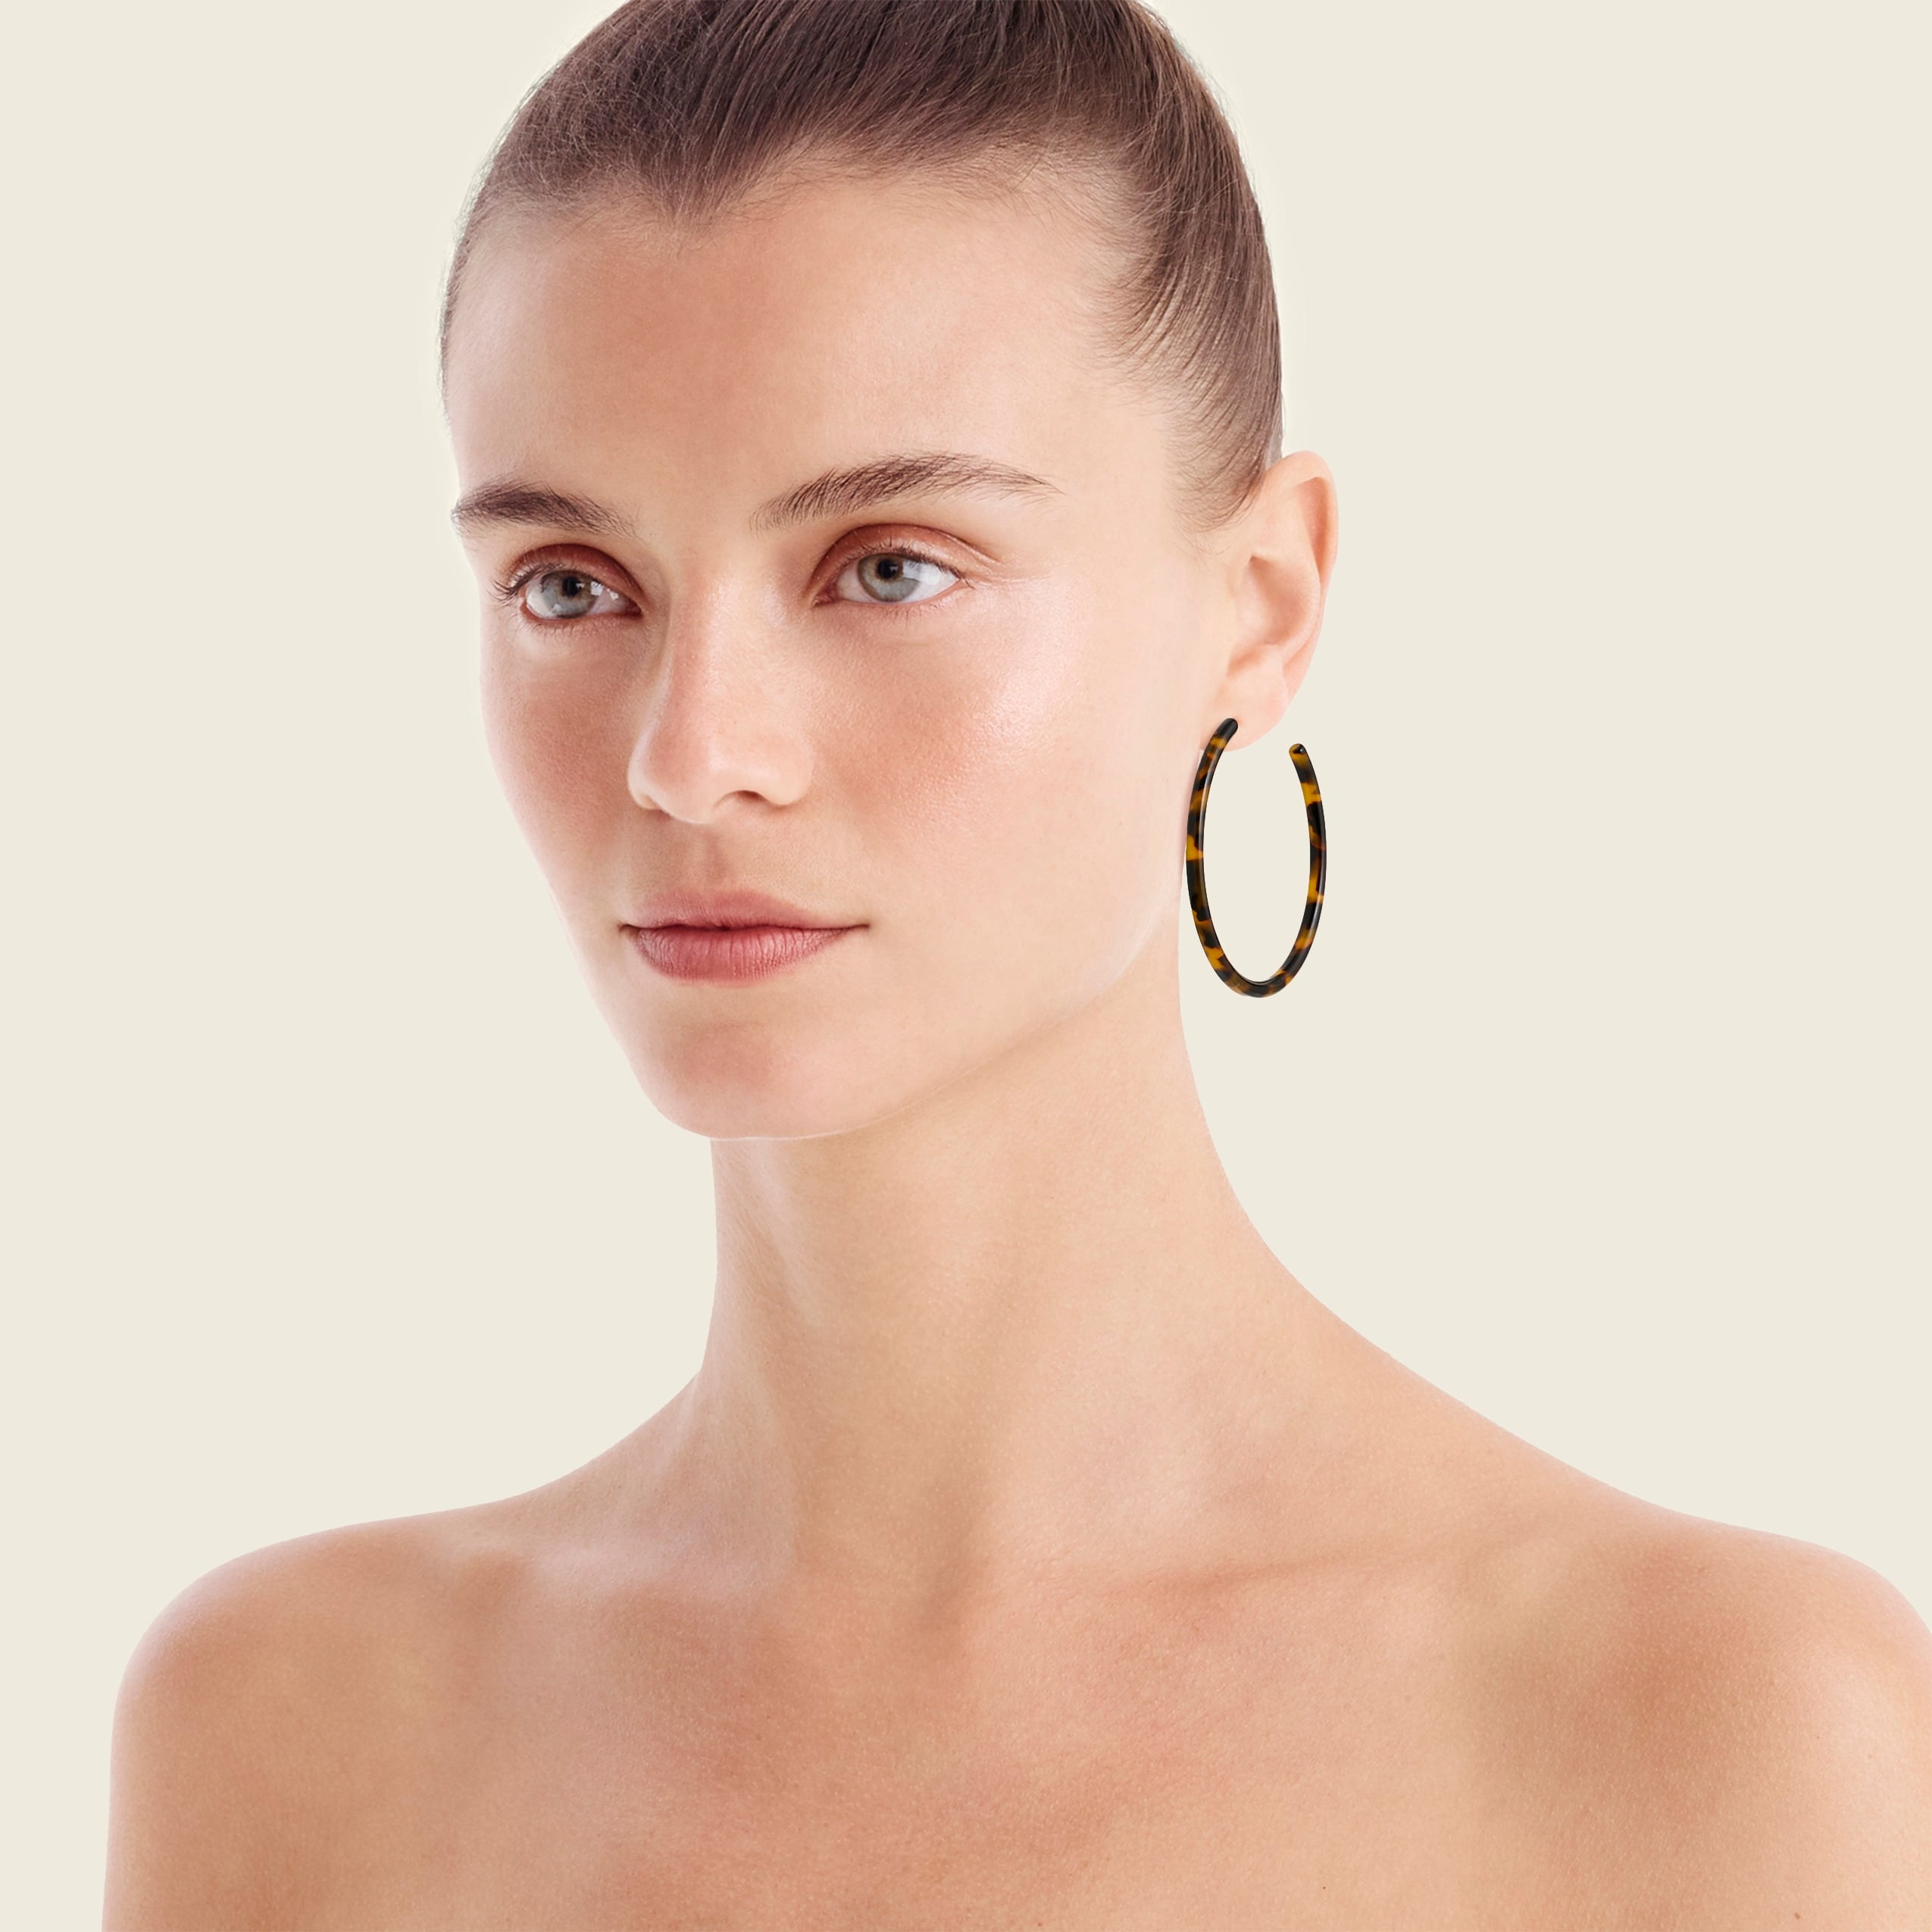 Image 3 for Tortoise hoop earrings